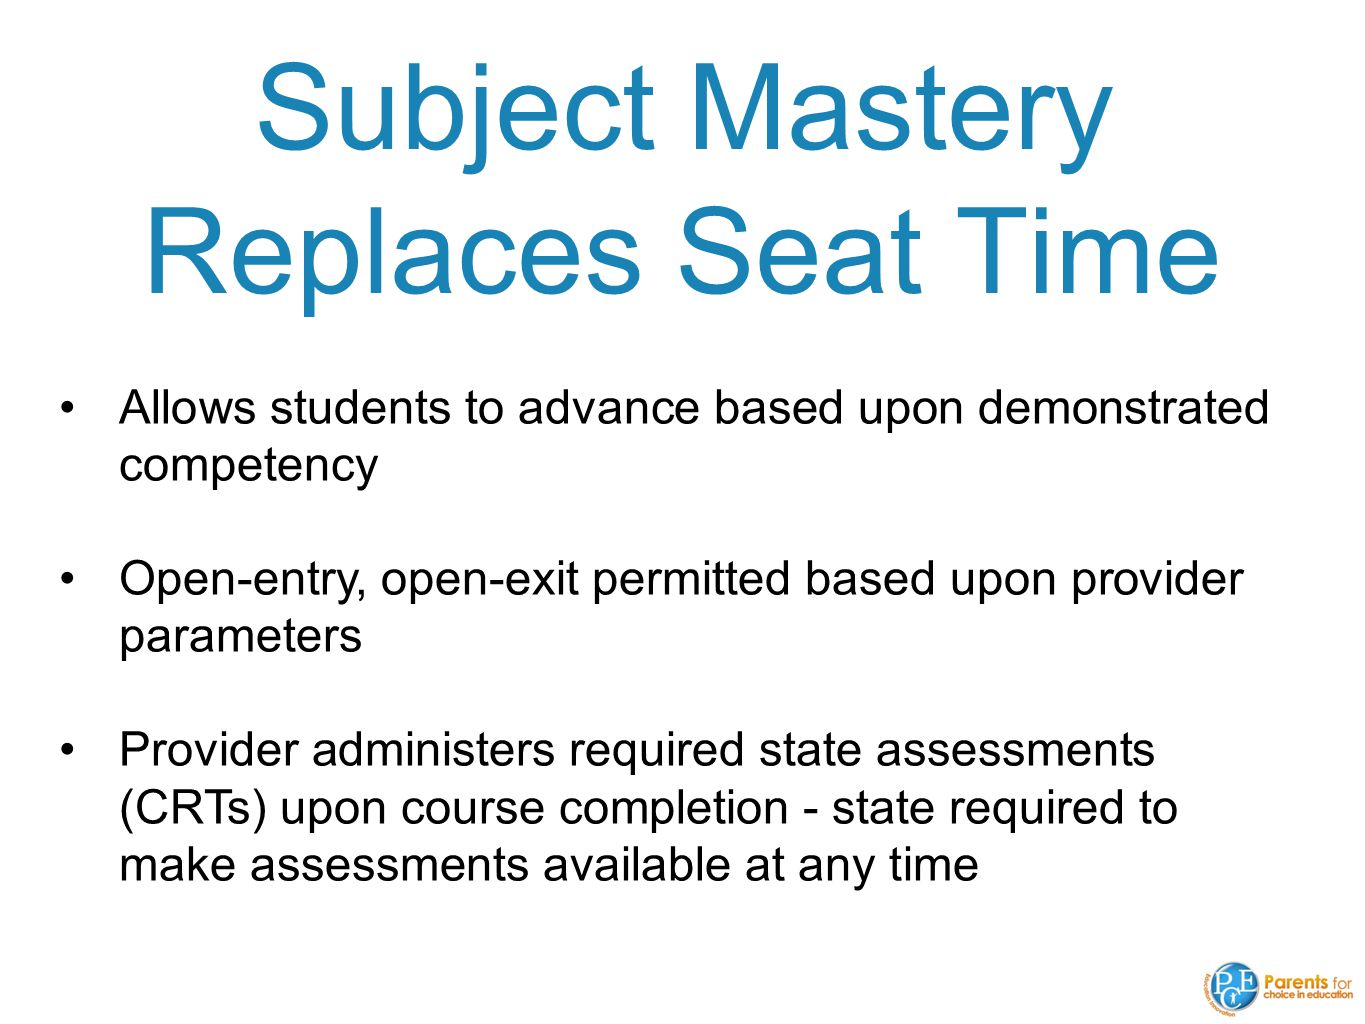 Subject Mastery Replaces Seat Time Allows students to advance based upon demonstrated competency Open-entry, open-exit permitted based upon provider parameters Provider administers required state assessments (CRTs) upon course completion - state required to make assessments available at any time